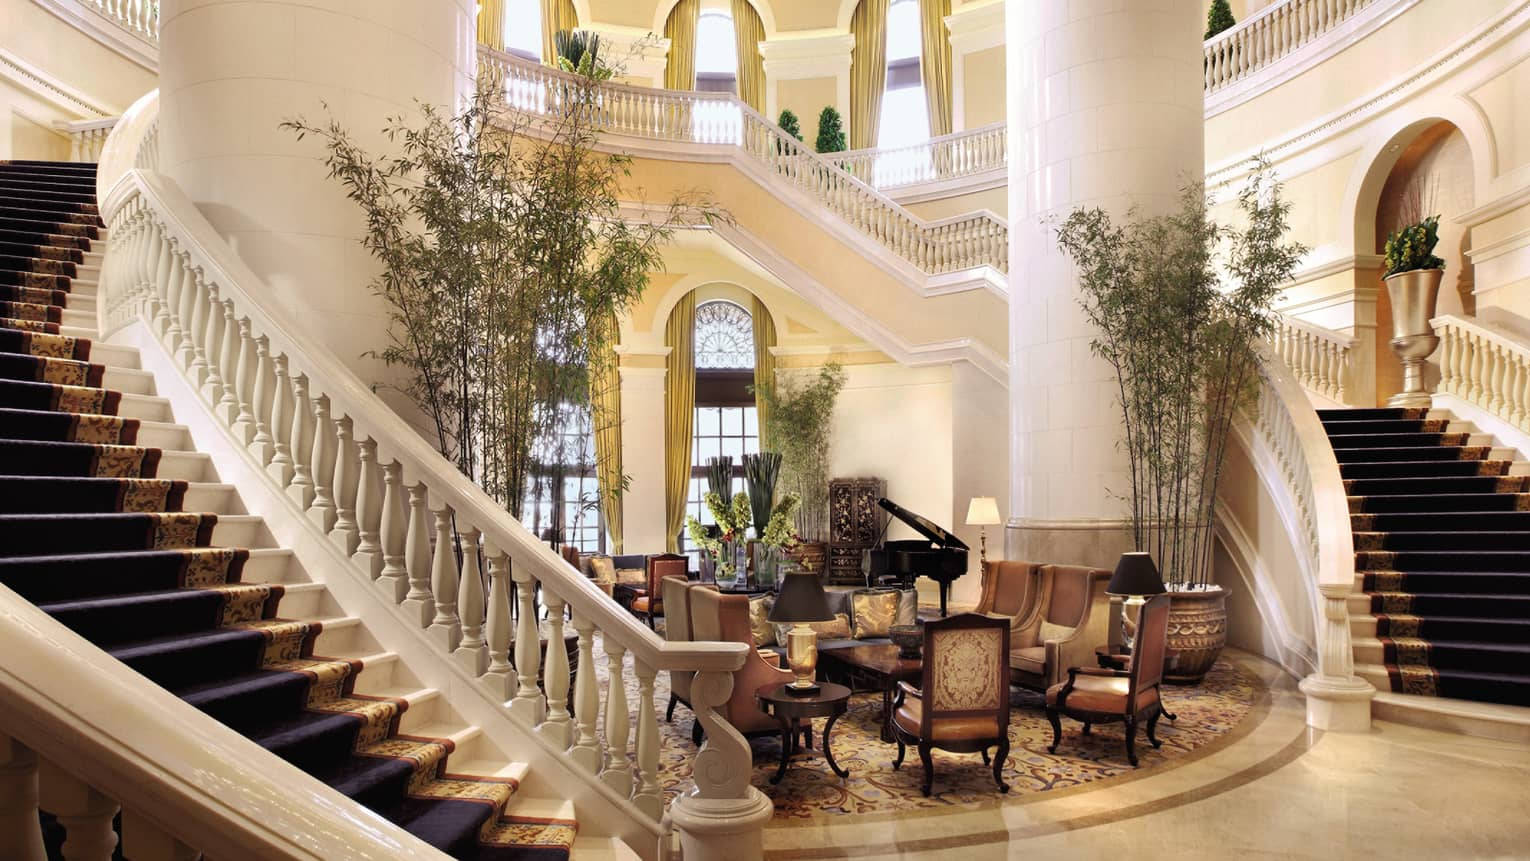 Hotel lobby with two grand staircases around large white pillars, seating area